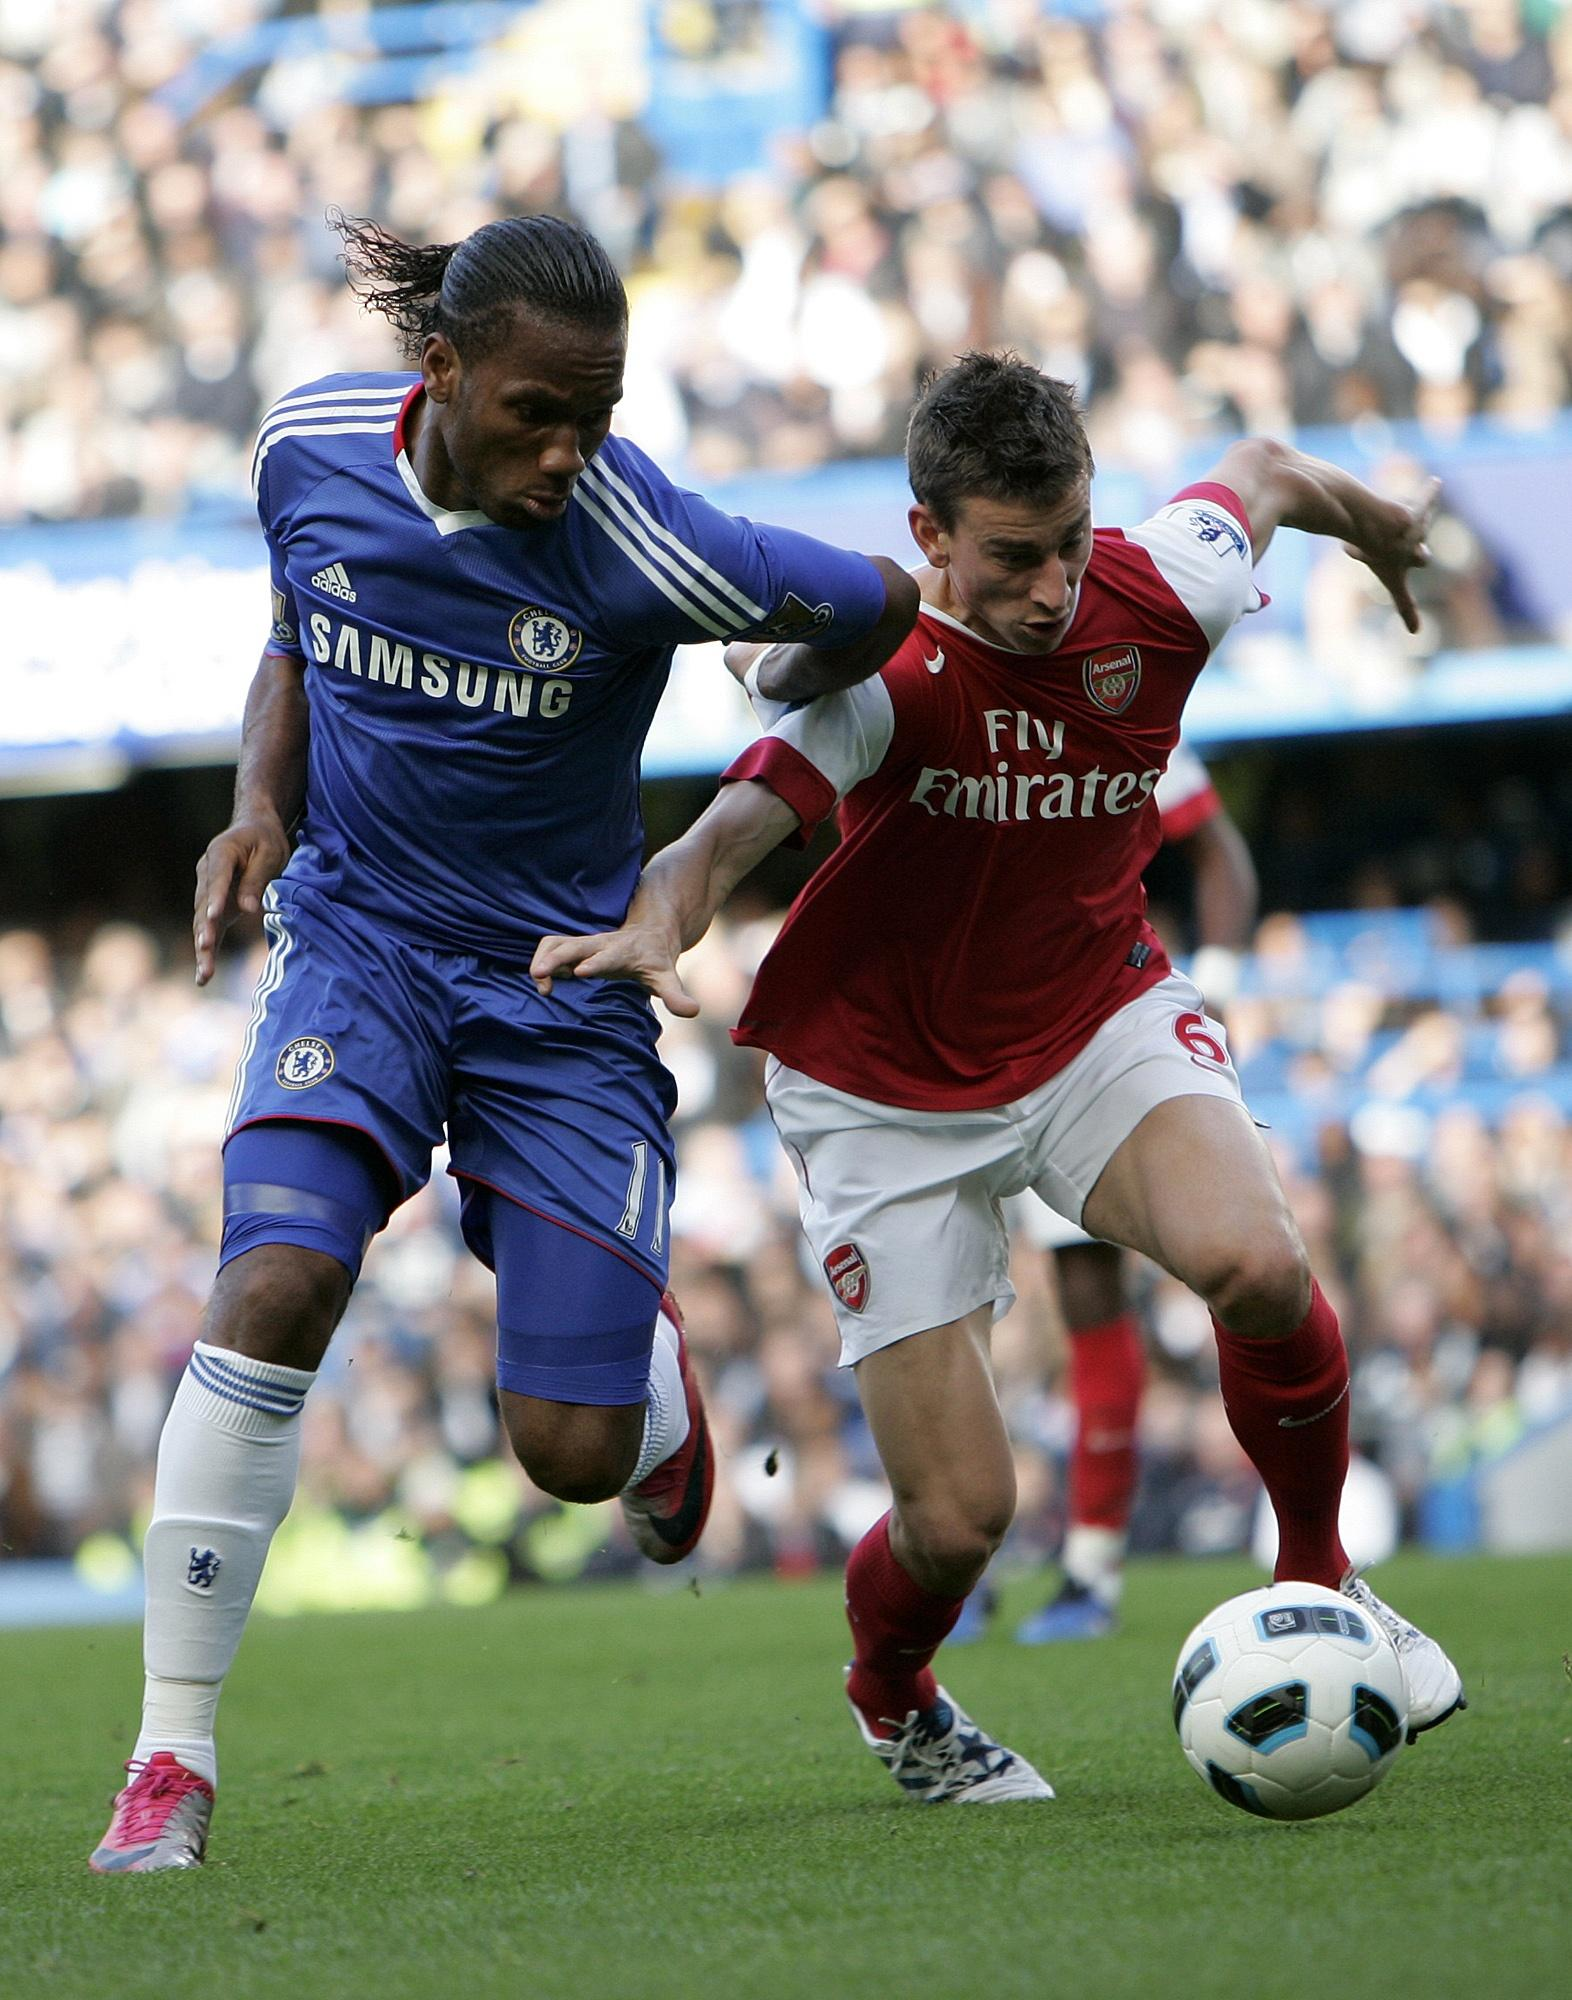 c9c86808e EPL Match Day 19  Arsenal v Chelsea  Match Day Preview - You Are My ...